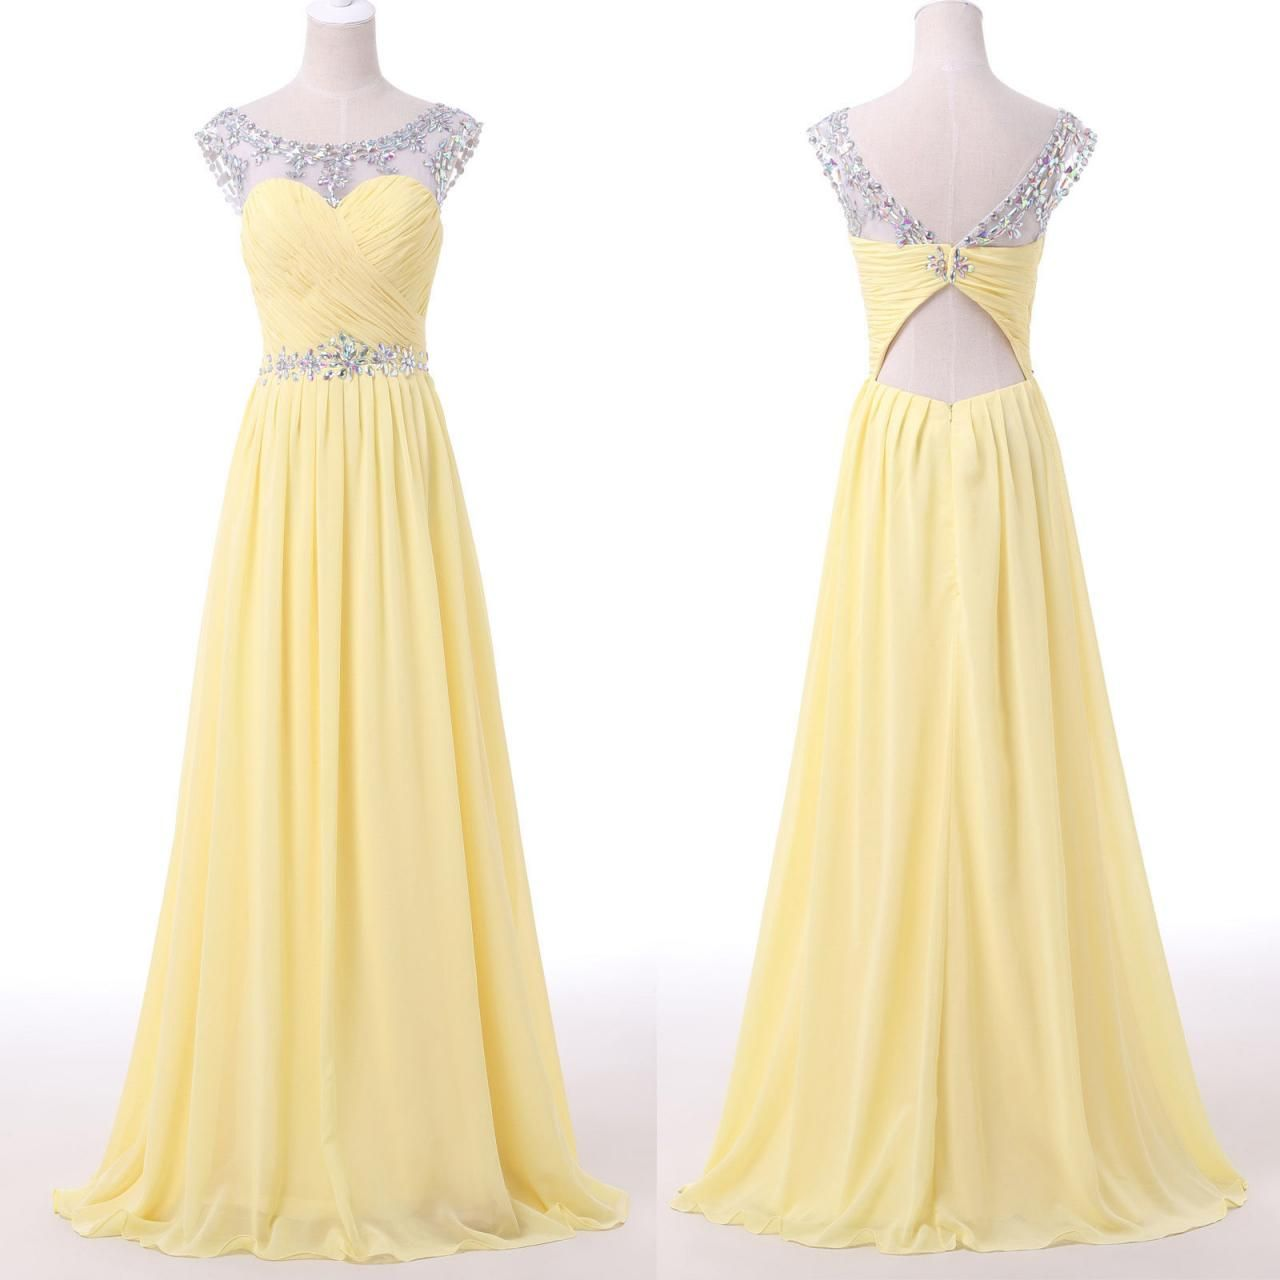 2016 Yellow Beaded Illusion Chiffon Prom Dress With Cut Out Back ...